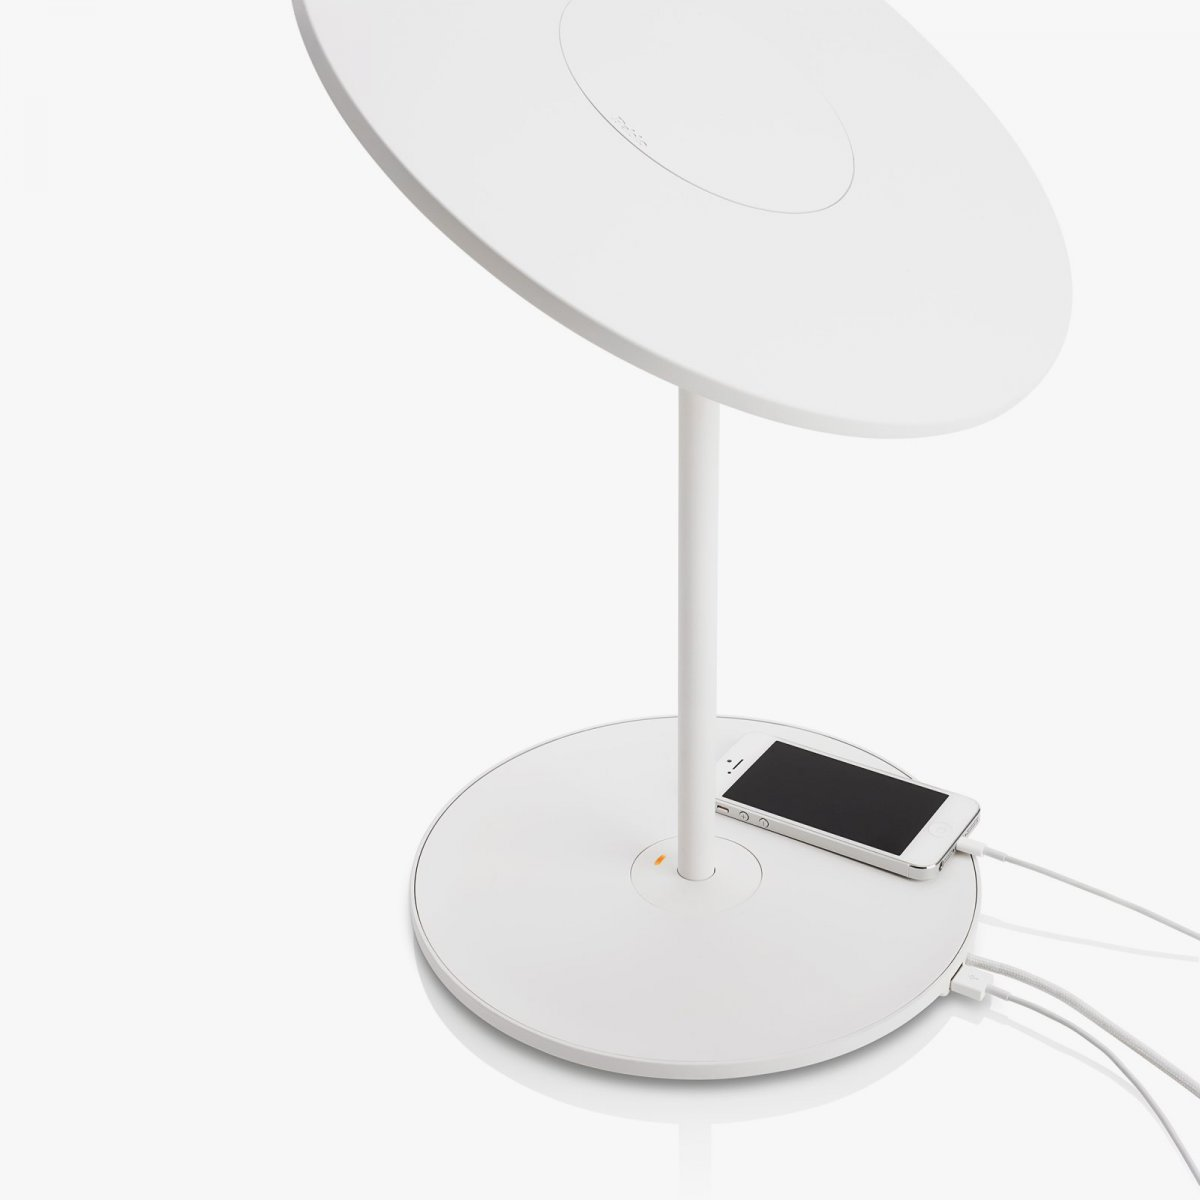 Circa Table Lamp, white, with integrated USB charging port.